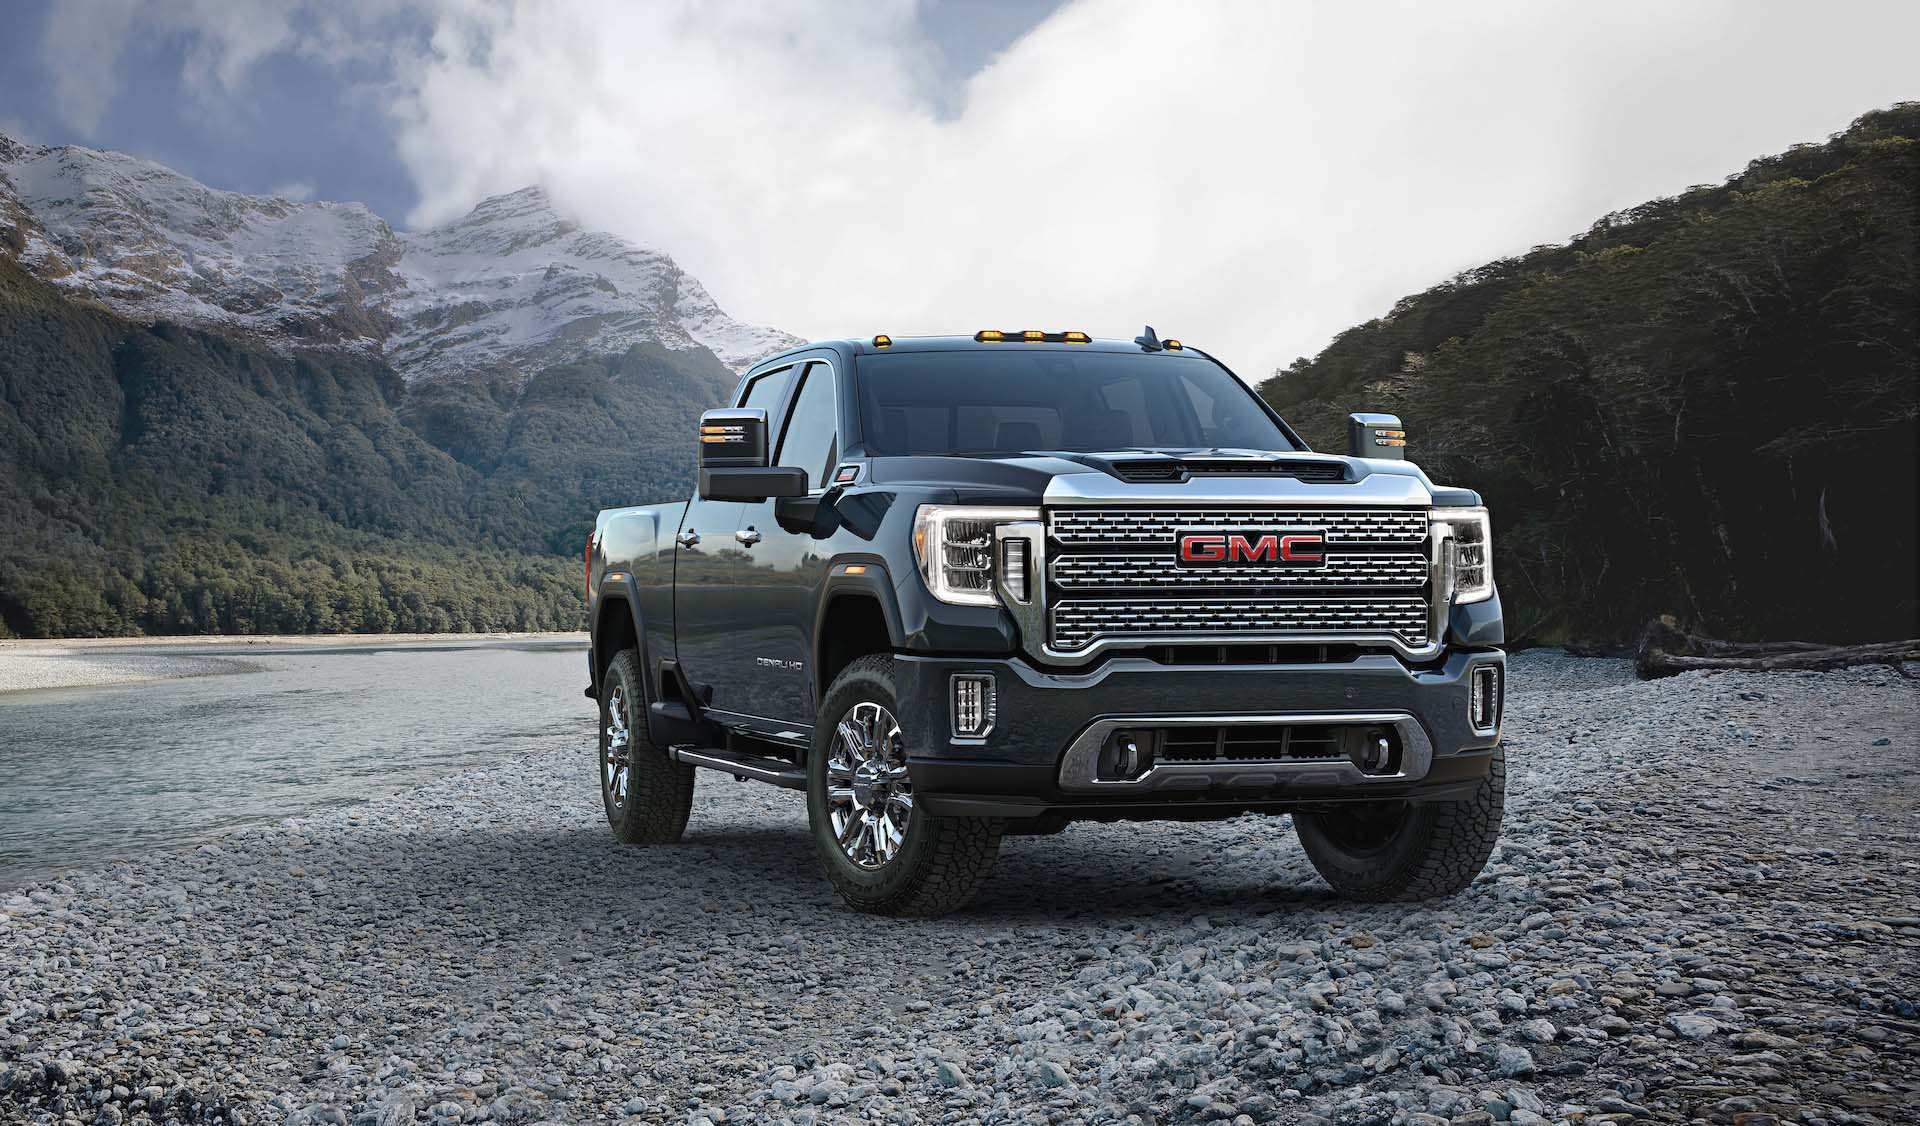 69 New Gmc Sierra Hd 2020 Price And Release Date